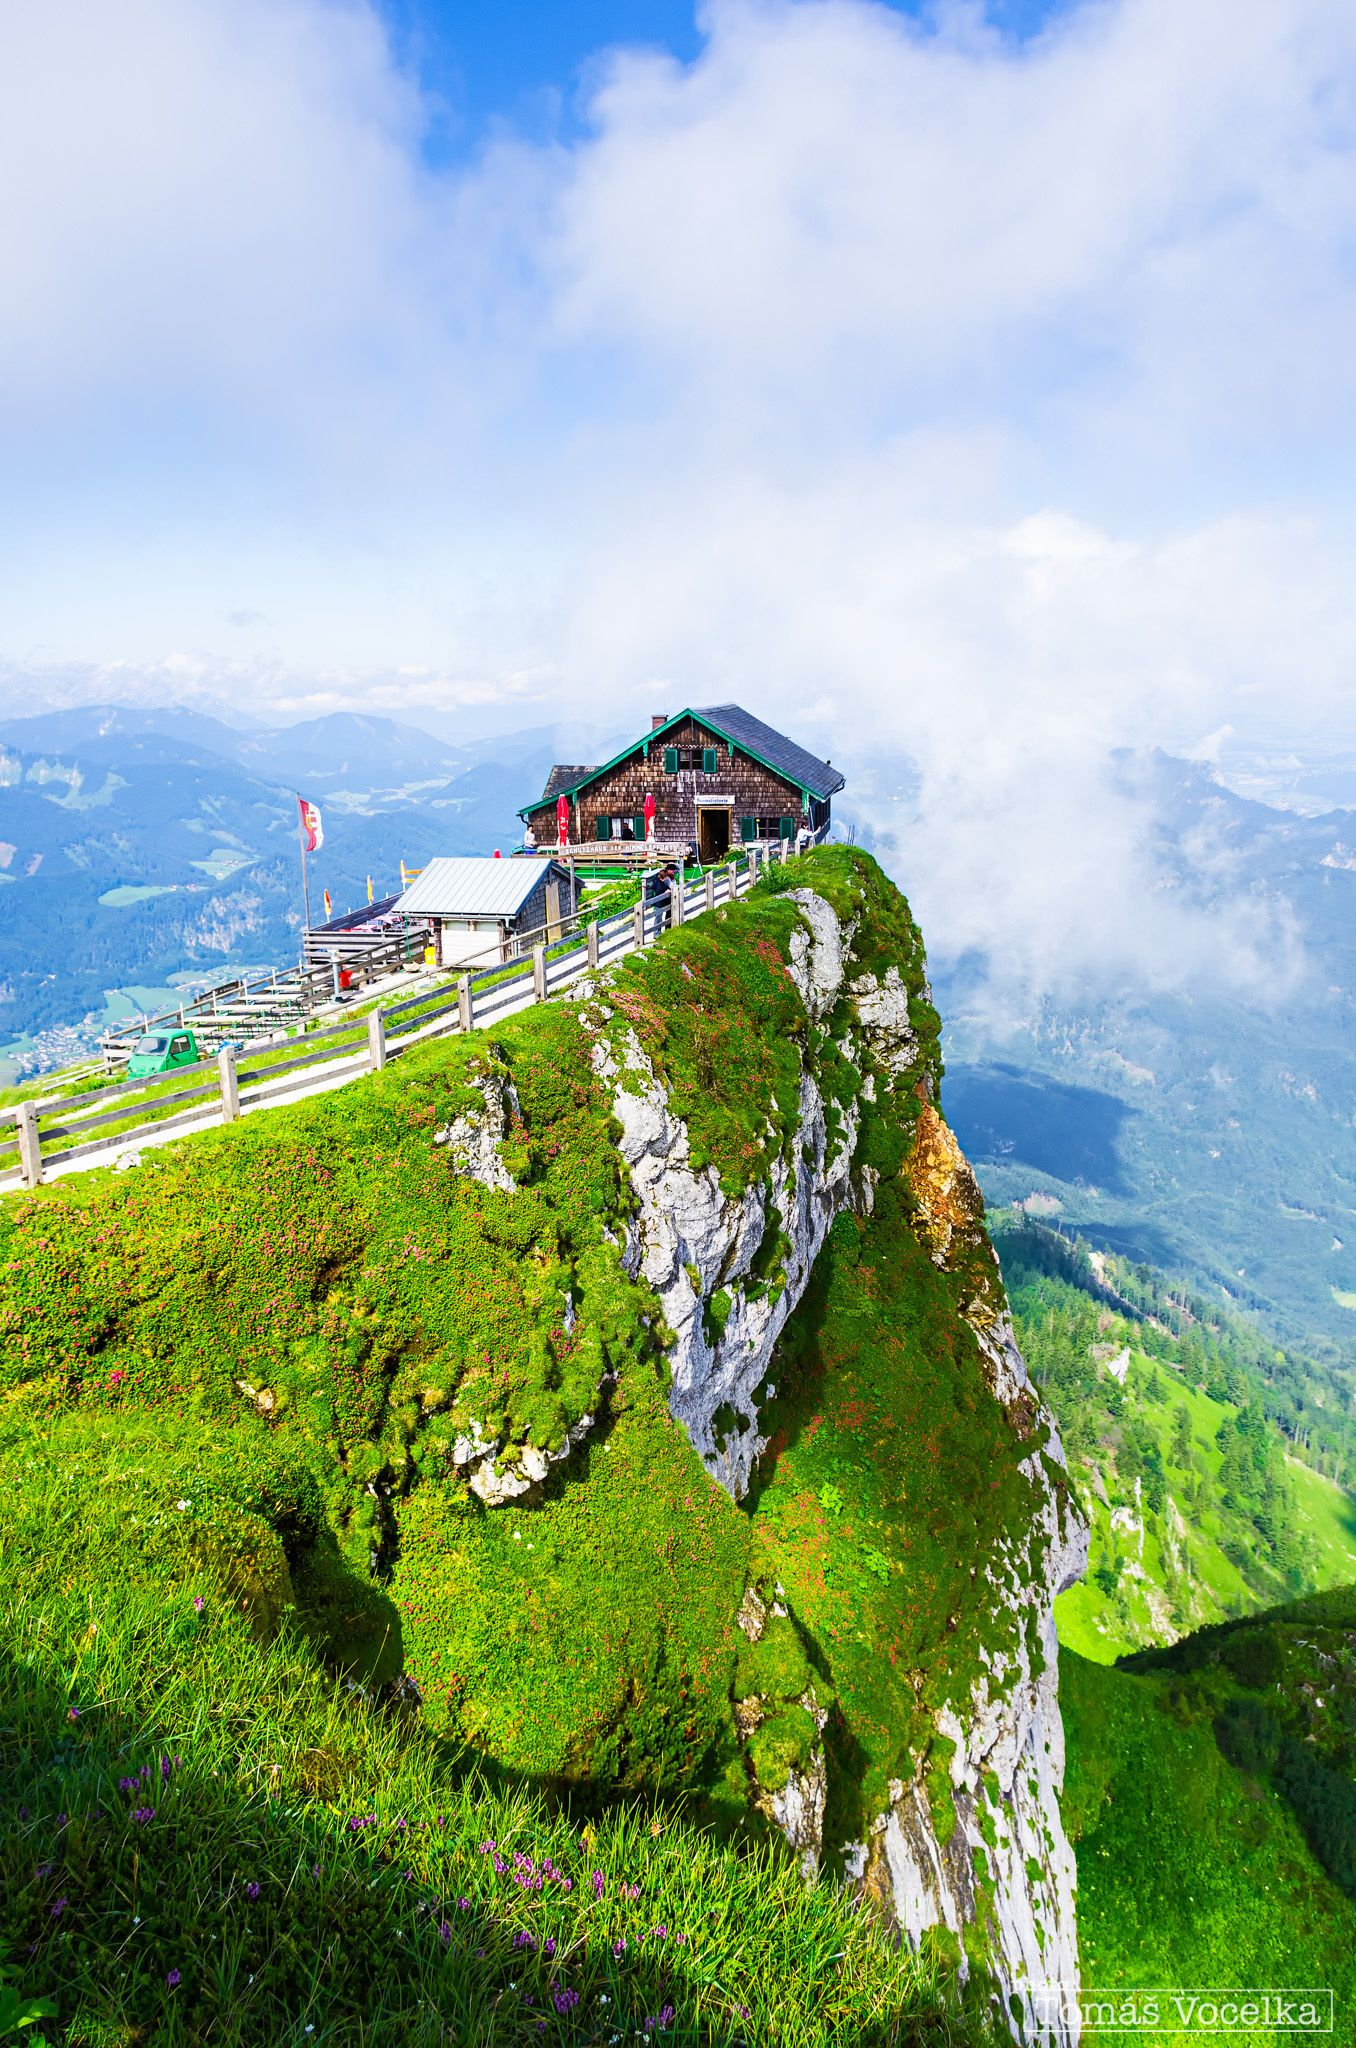 Gmail mountain theme pictures - Schafberg Mountain Hut On The Top Of The Schafberg 1 783 M Austria